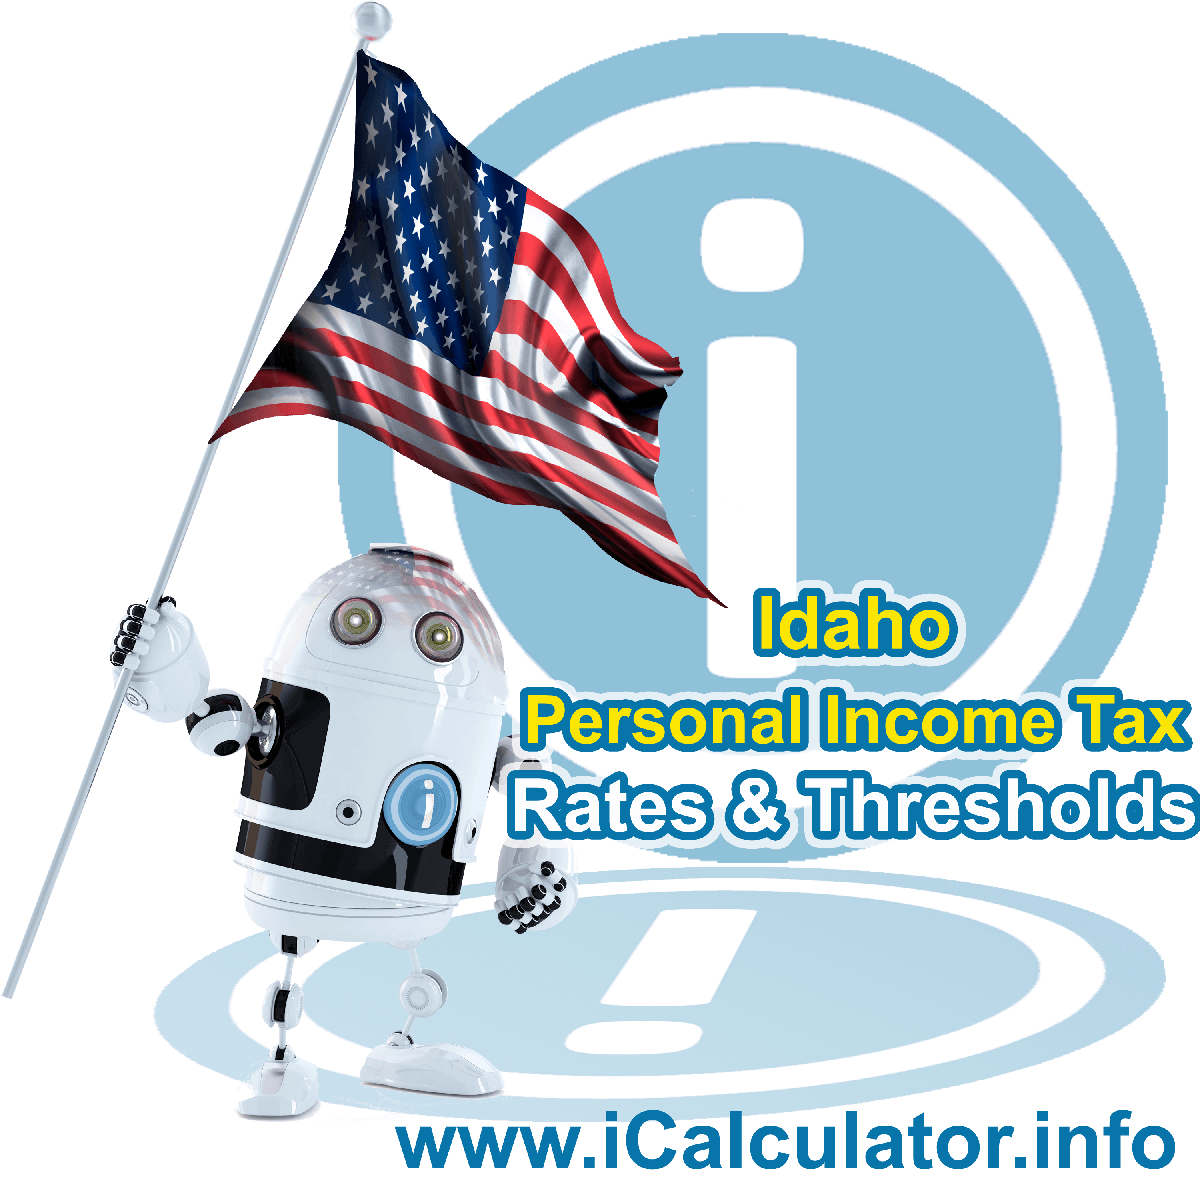 Idaho State Tax Tables 2014. This image displays details of the Idaho State Tax Tables for the 2014 tax return year which is provided in support of the 2014 US Tax Calculator